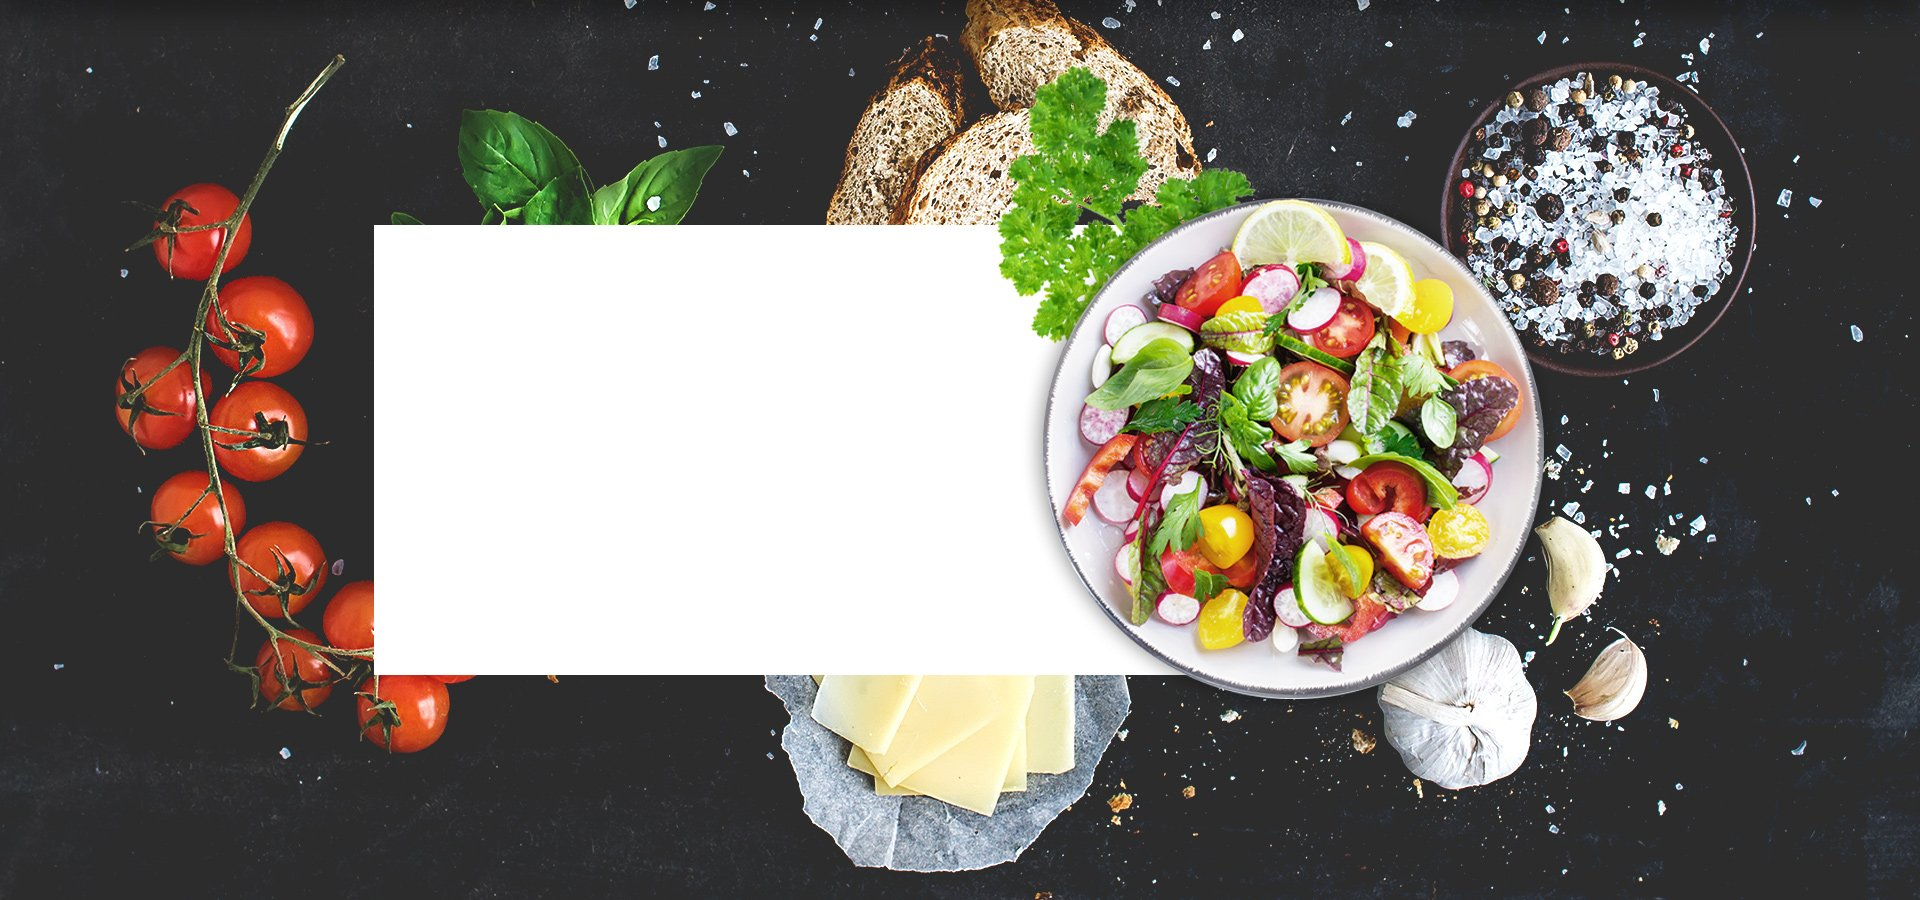 salad background with label